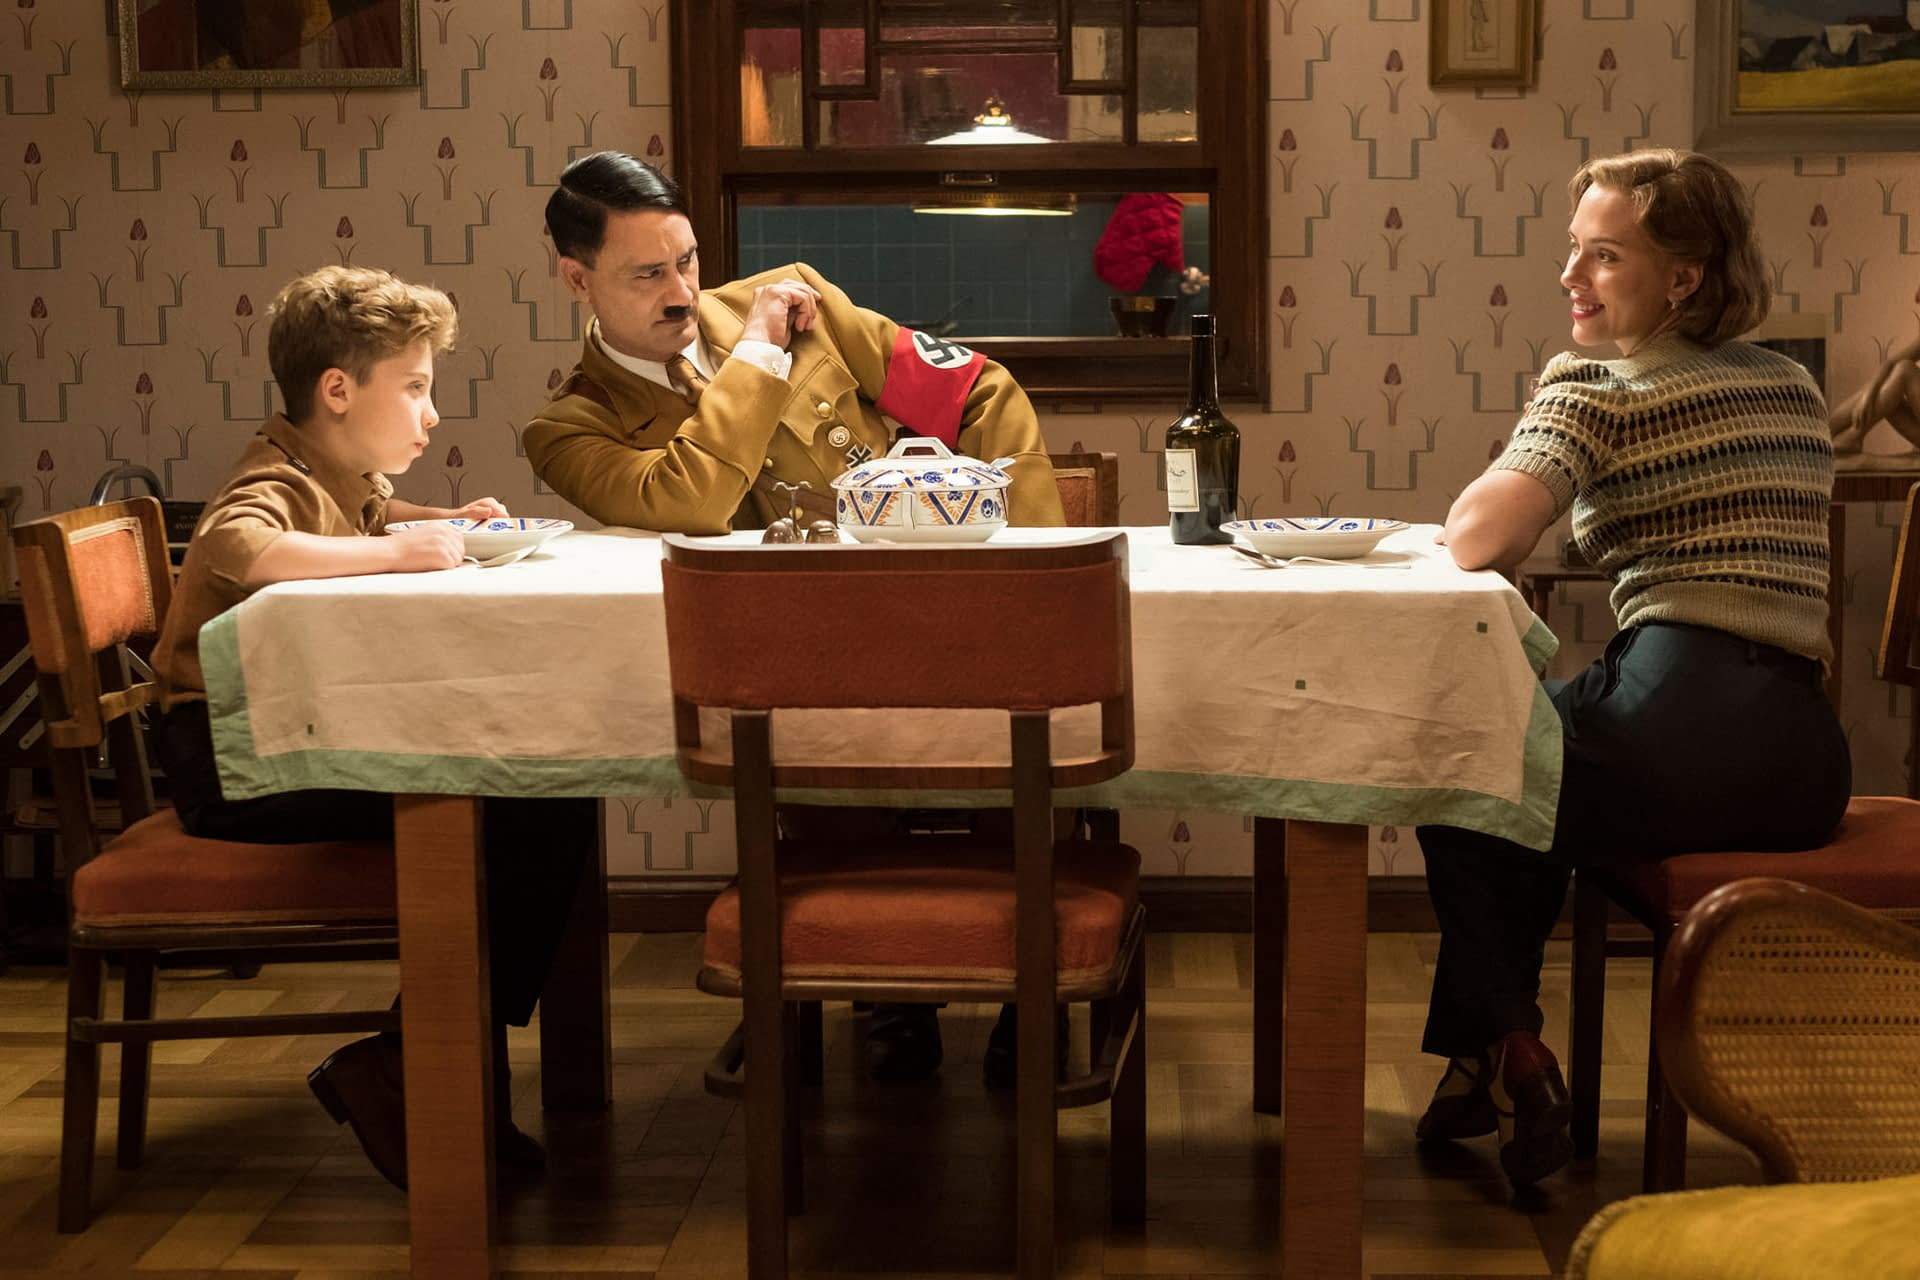 Jojo, His Friend Hitler, and His Mom